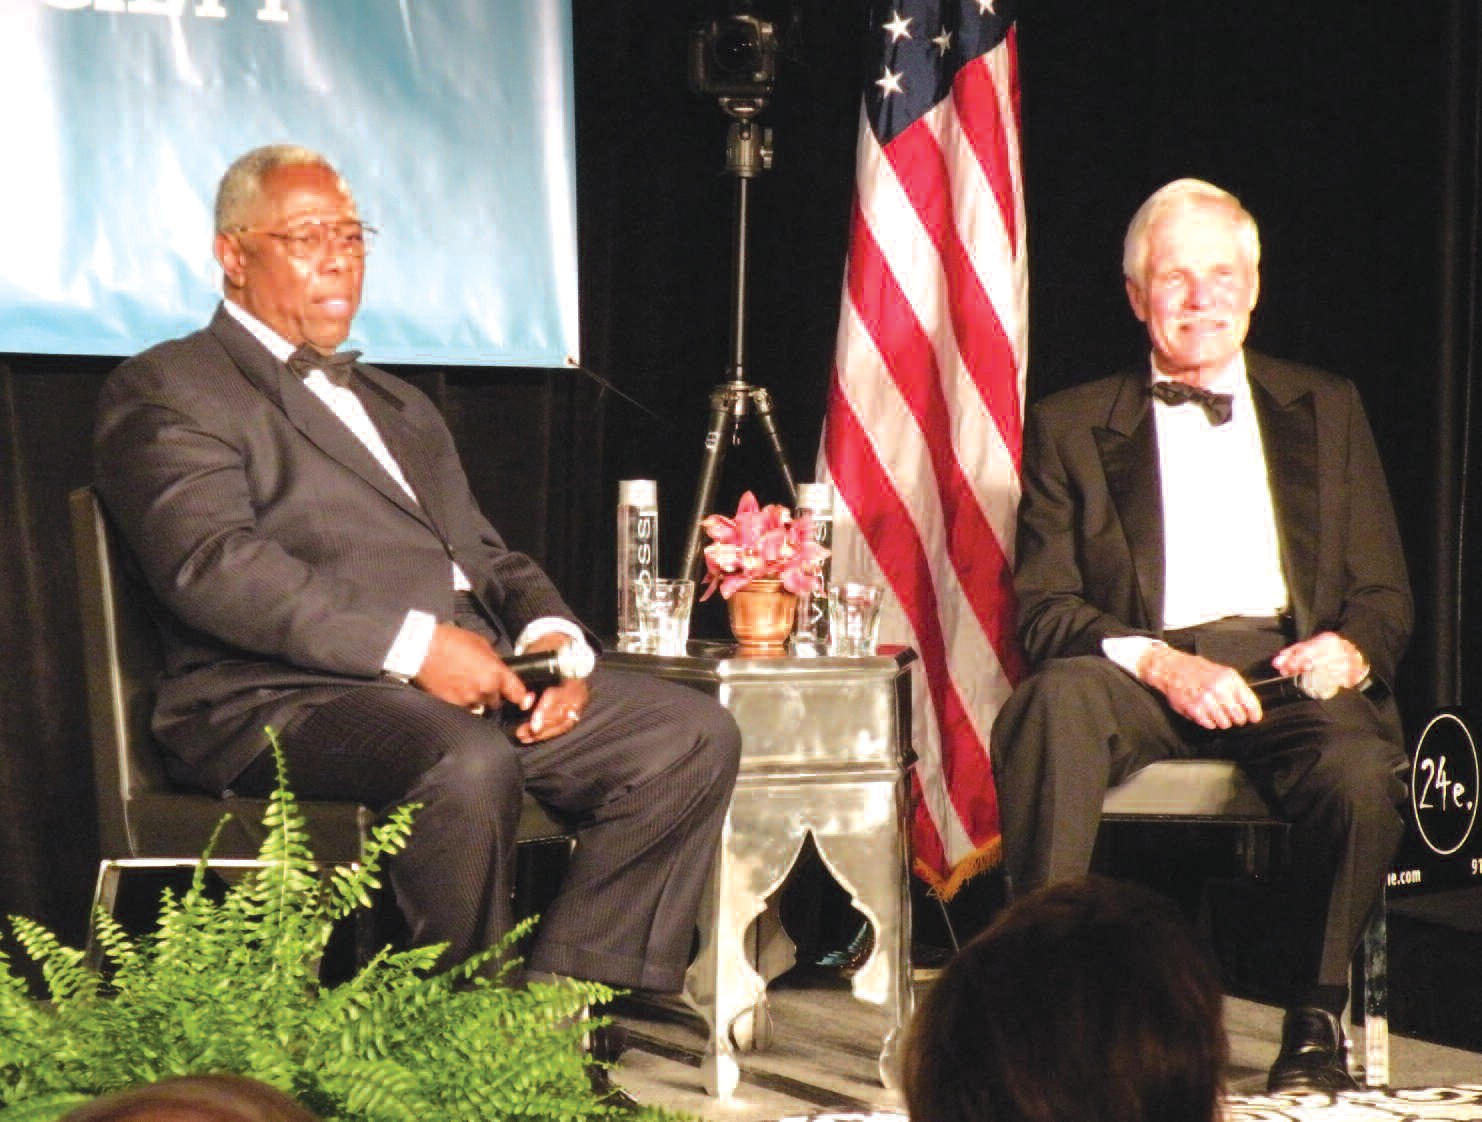 Hank Aaron and Ted Turner participate in a question and answer session following their Georgia Trustees induction